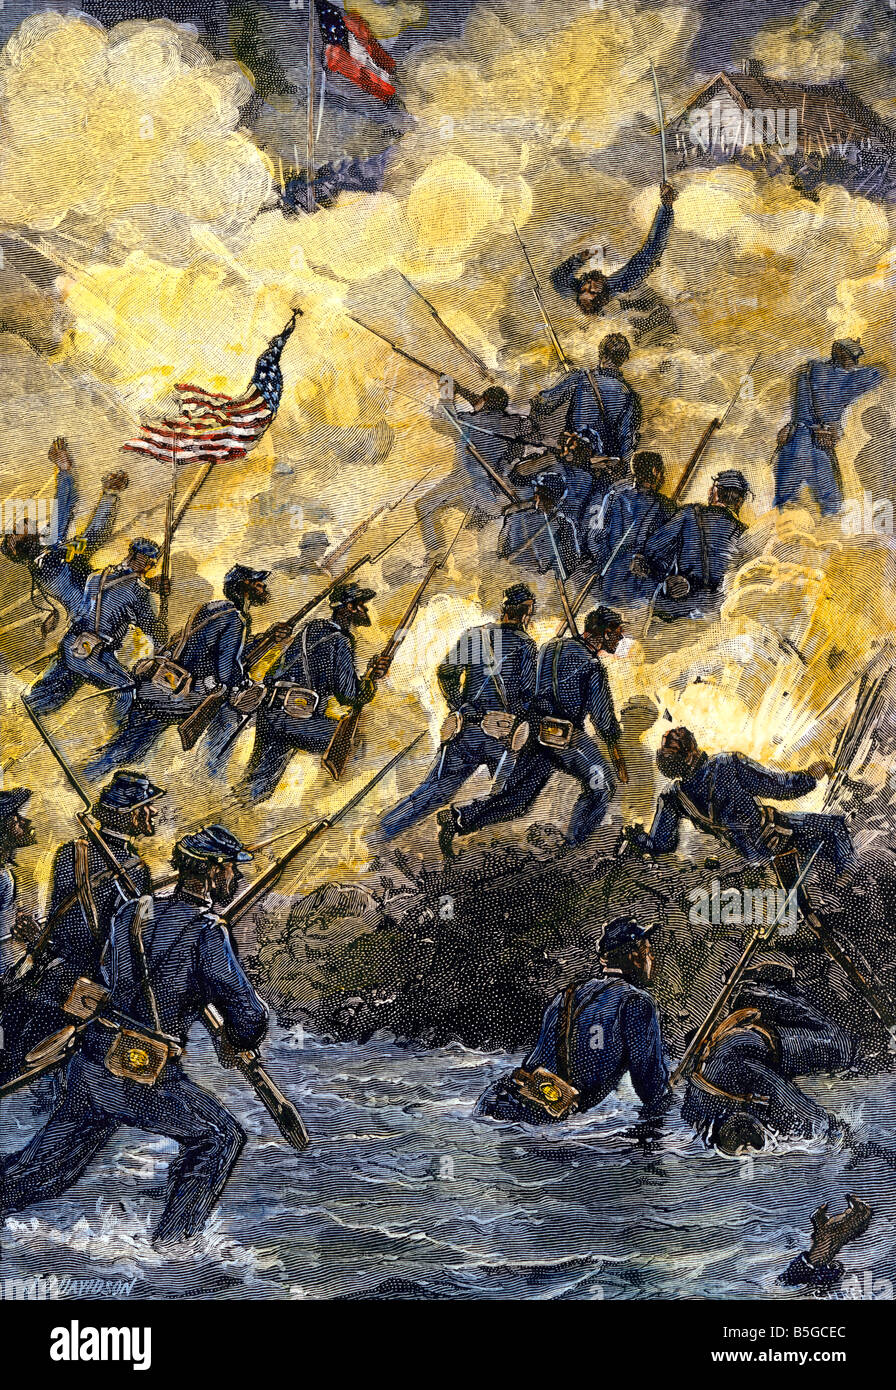 54th Massachusetts Colored Regiment assaulting Confederate stronghold of Fort Wagner, South Carolina. Hand-colored - Stock Image